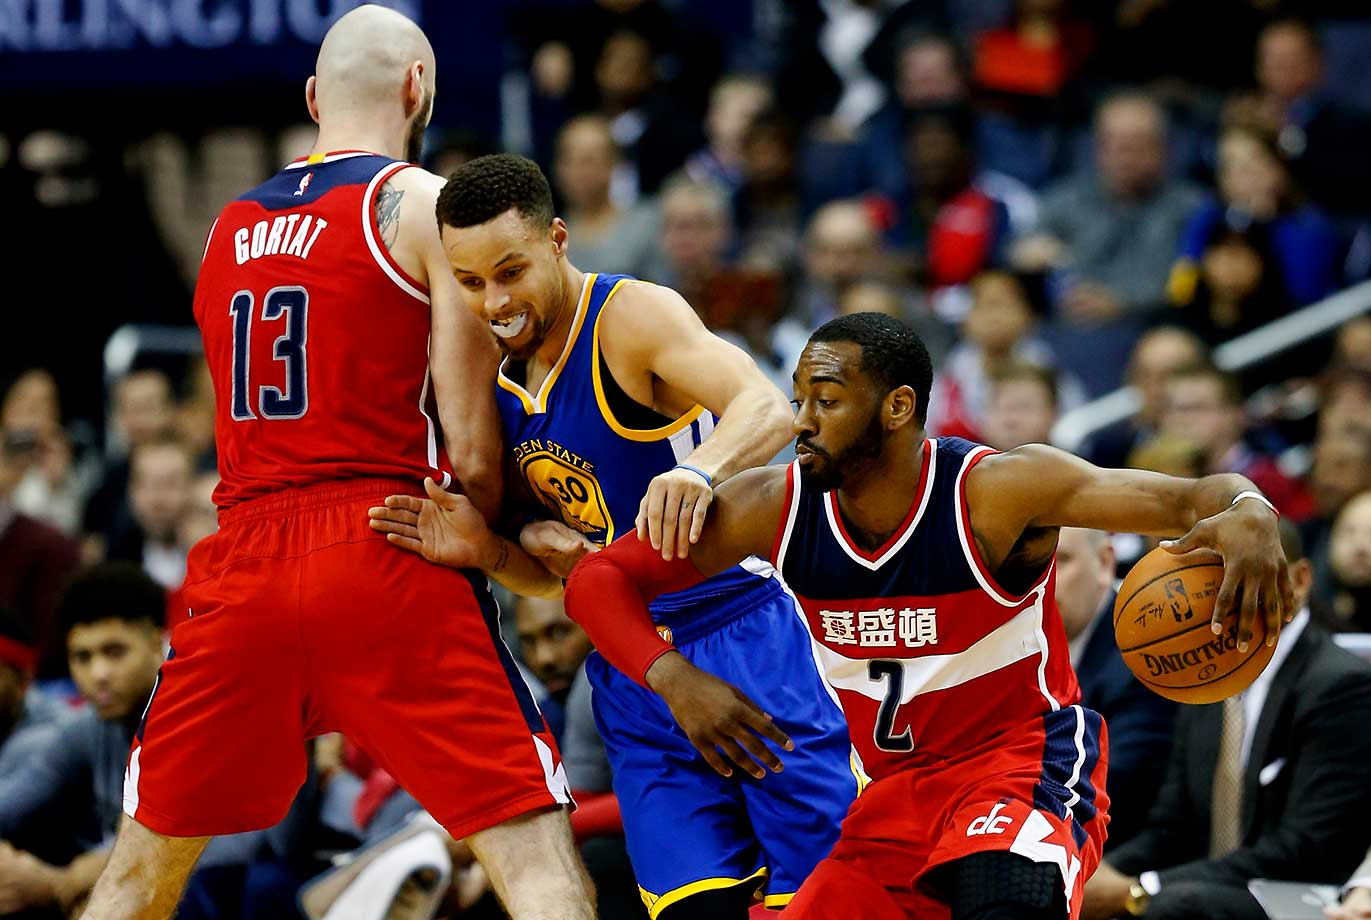 John Wall of the Washington Wizards drives around Stephen Curry of the Golden State Warriors and Marcin Gortat of the Washington Wizards at Verizon Center in Washington, D.C.